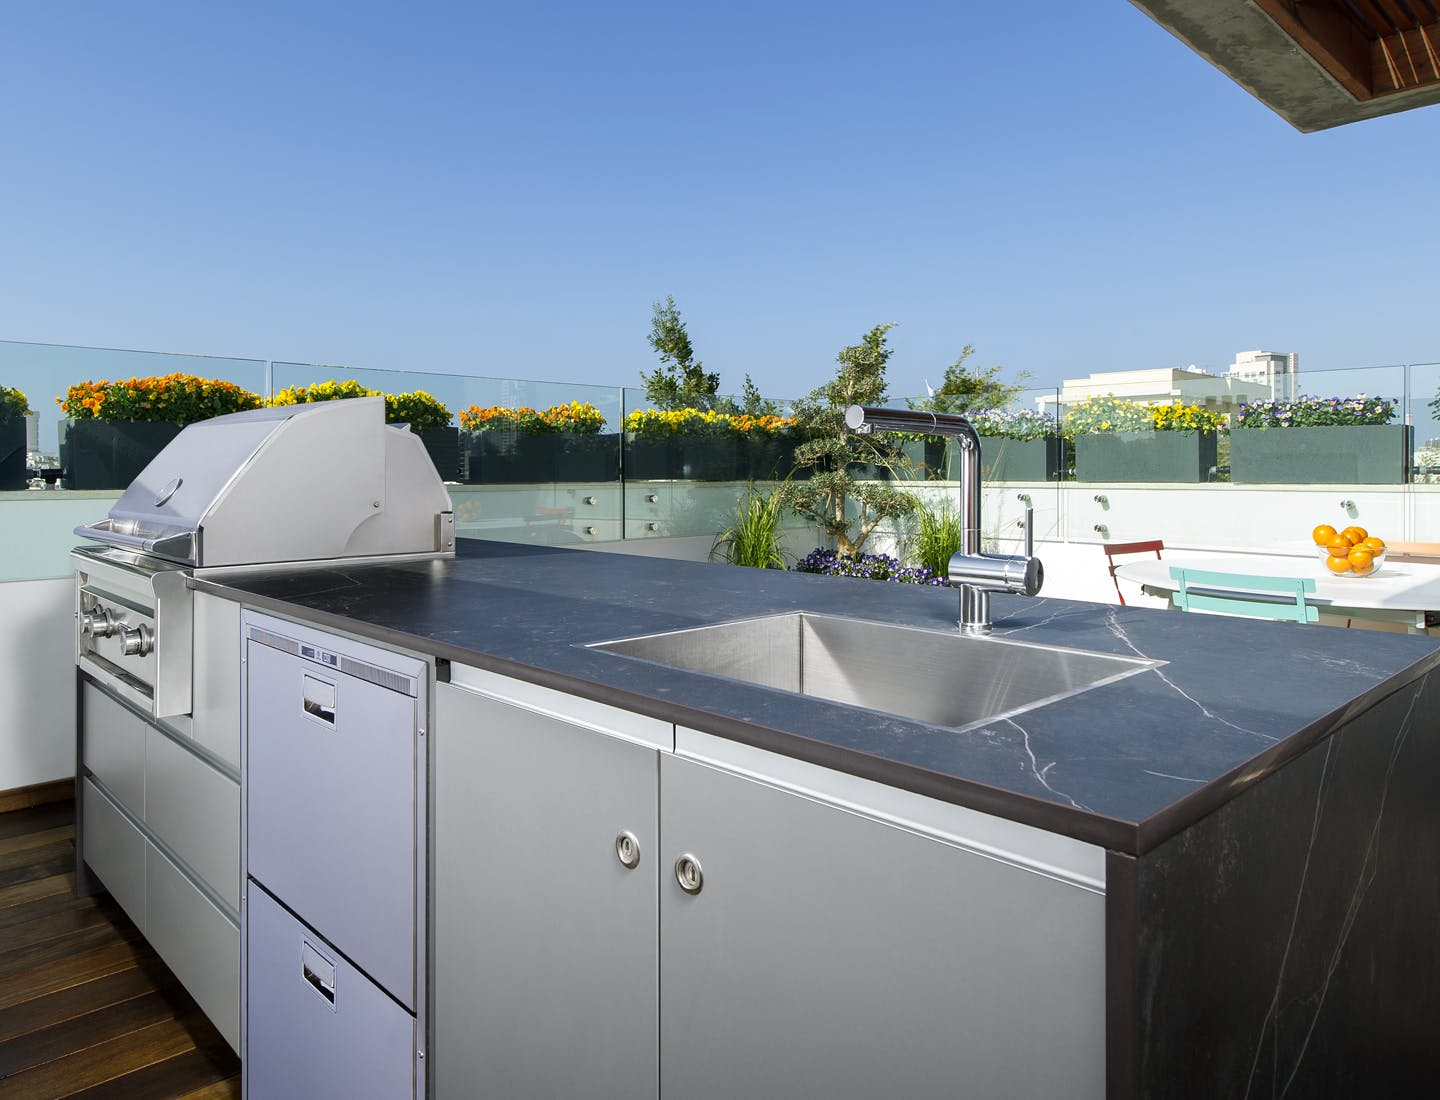 Outside use kitchens  - cocina exterior 3 44